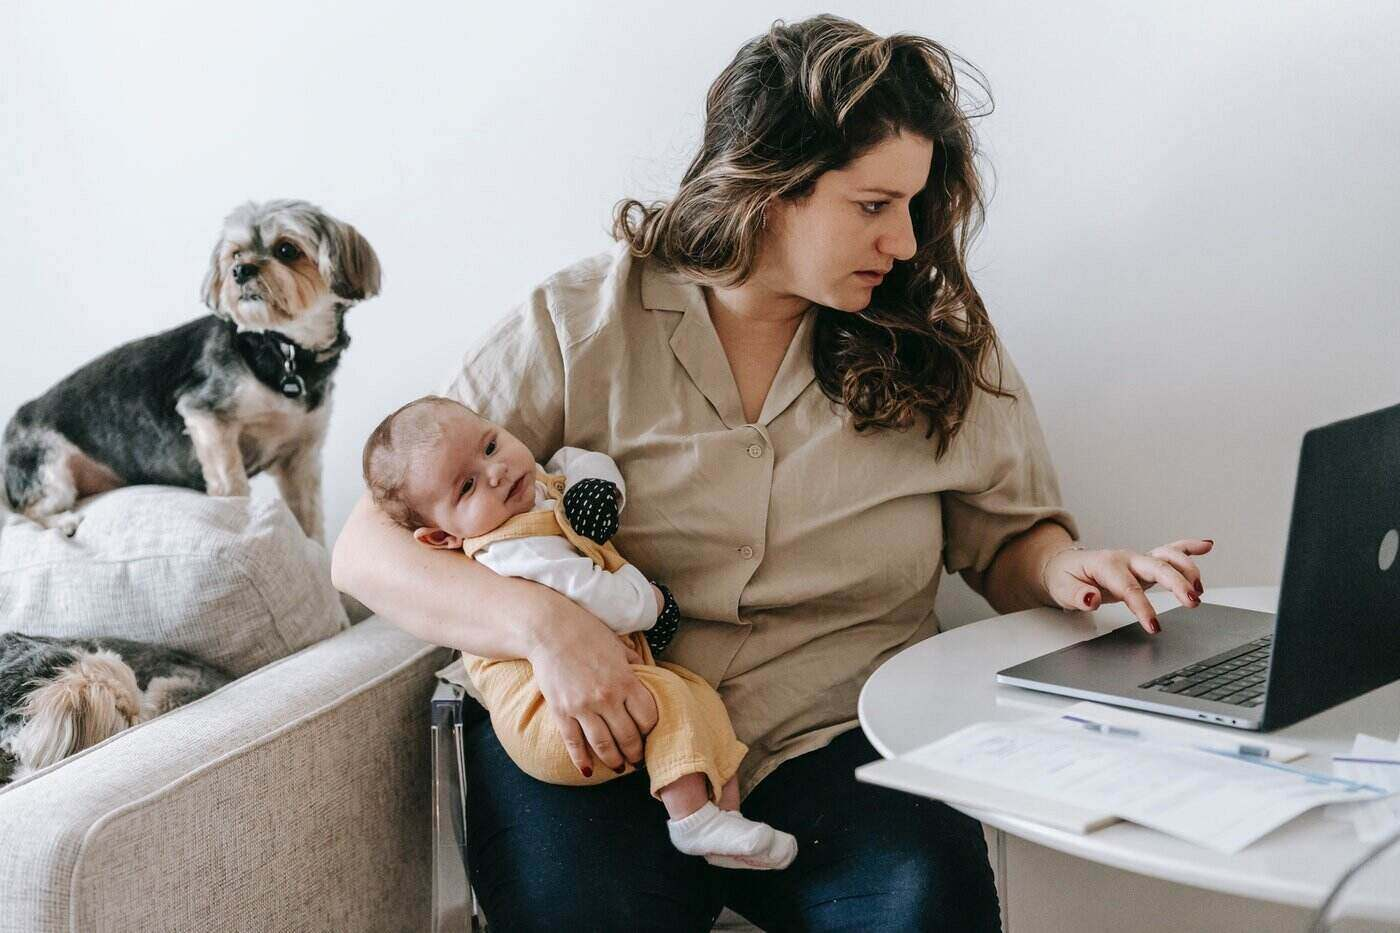 mom holding baby while working on laptop - helpful hints to make your way back to the workforce